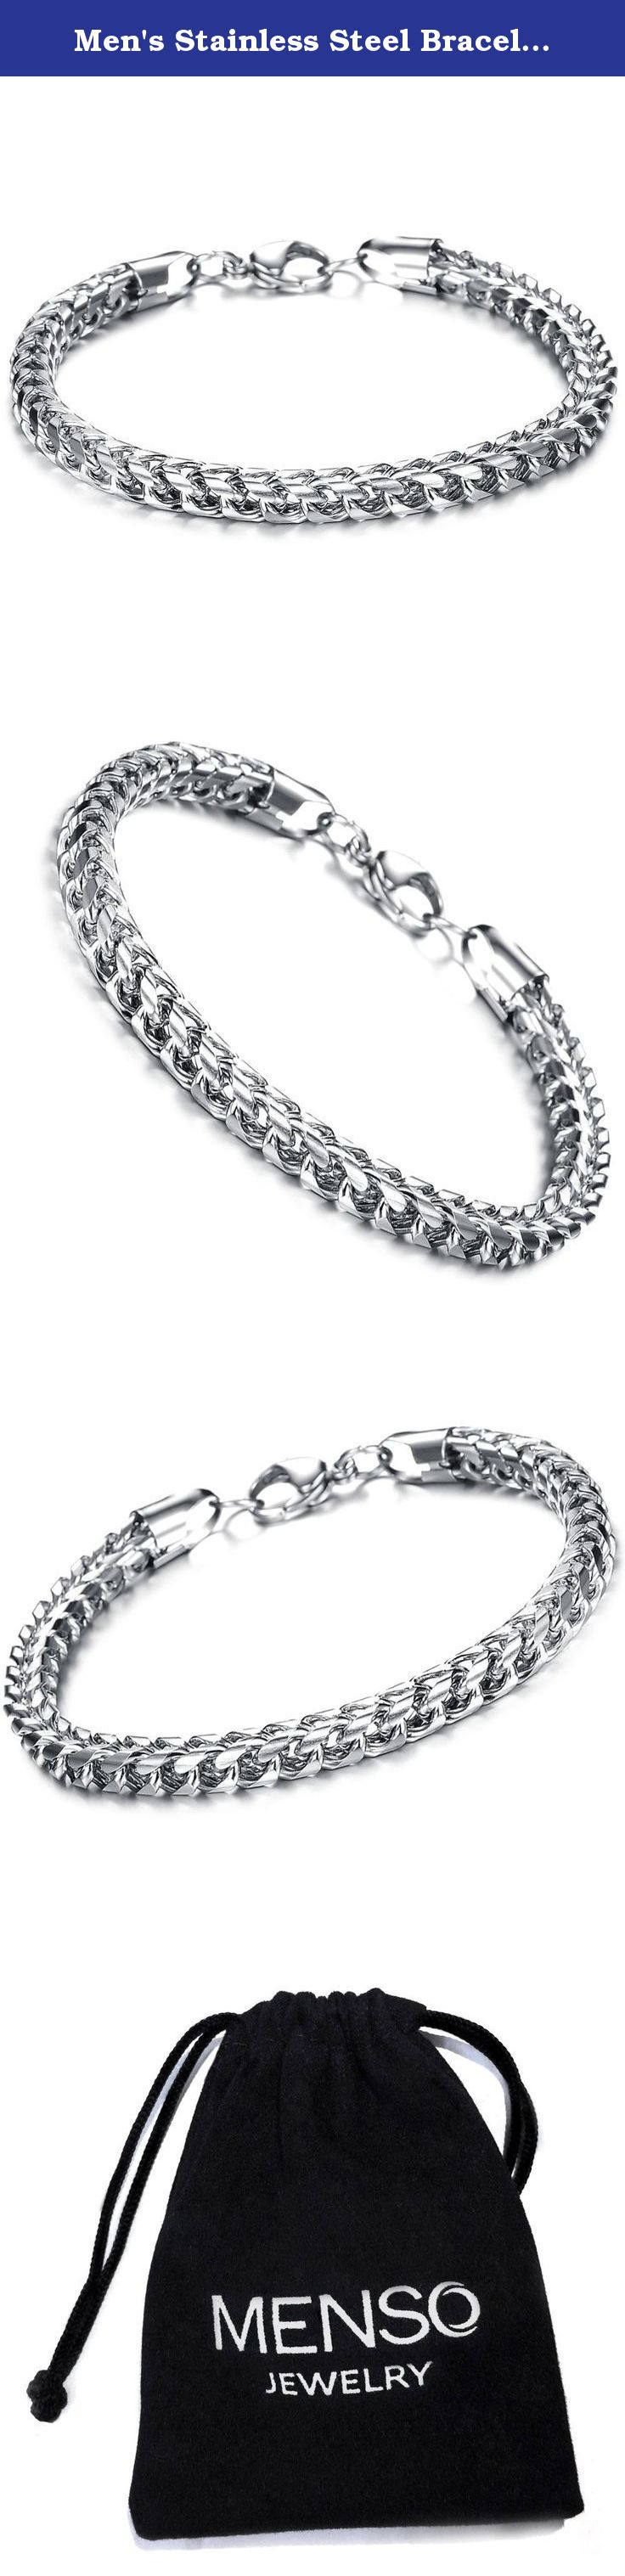 Men's Stainless Steel Bracelet Link Wrist Polished Biker Fashion Classic Silver. MENSO - High quality Jewelry Discover the MENSO Collection of jewelry. The selection of high-quality jewelry featured in the MENSO Collection offers Great values at affordable Price, they mainly made of high quality Stainless Steel, Tungsten, Silver and Leather. We uphold the highest standard of integrity,professionalism and customer service. In addition to unique designs,unbeatable prices and a full refund...